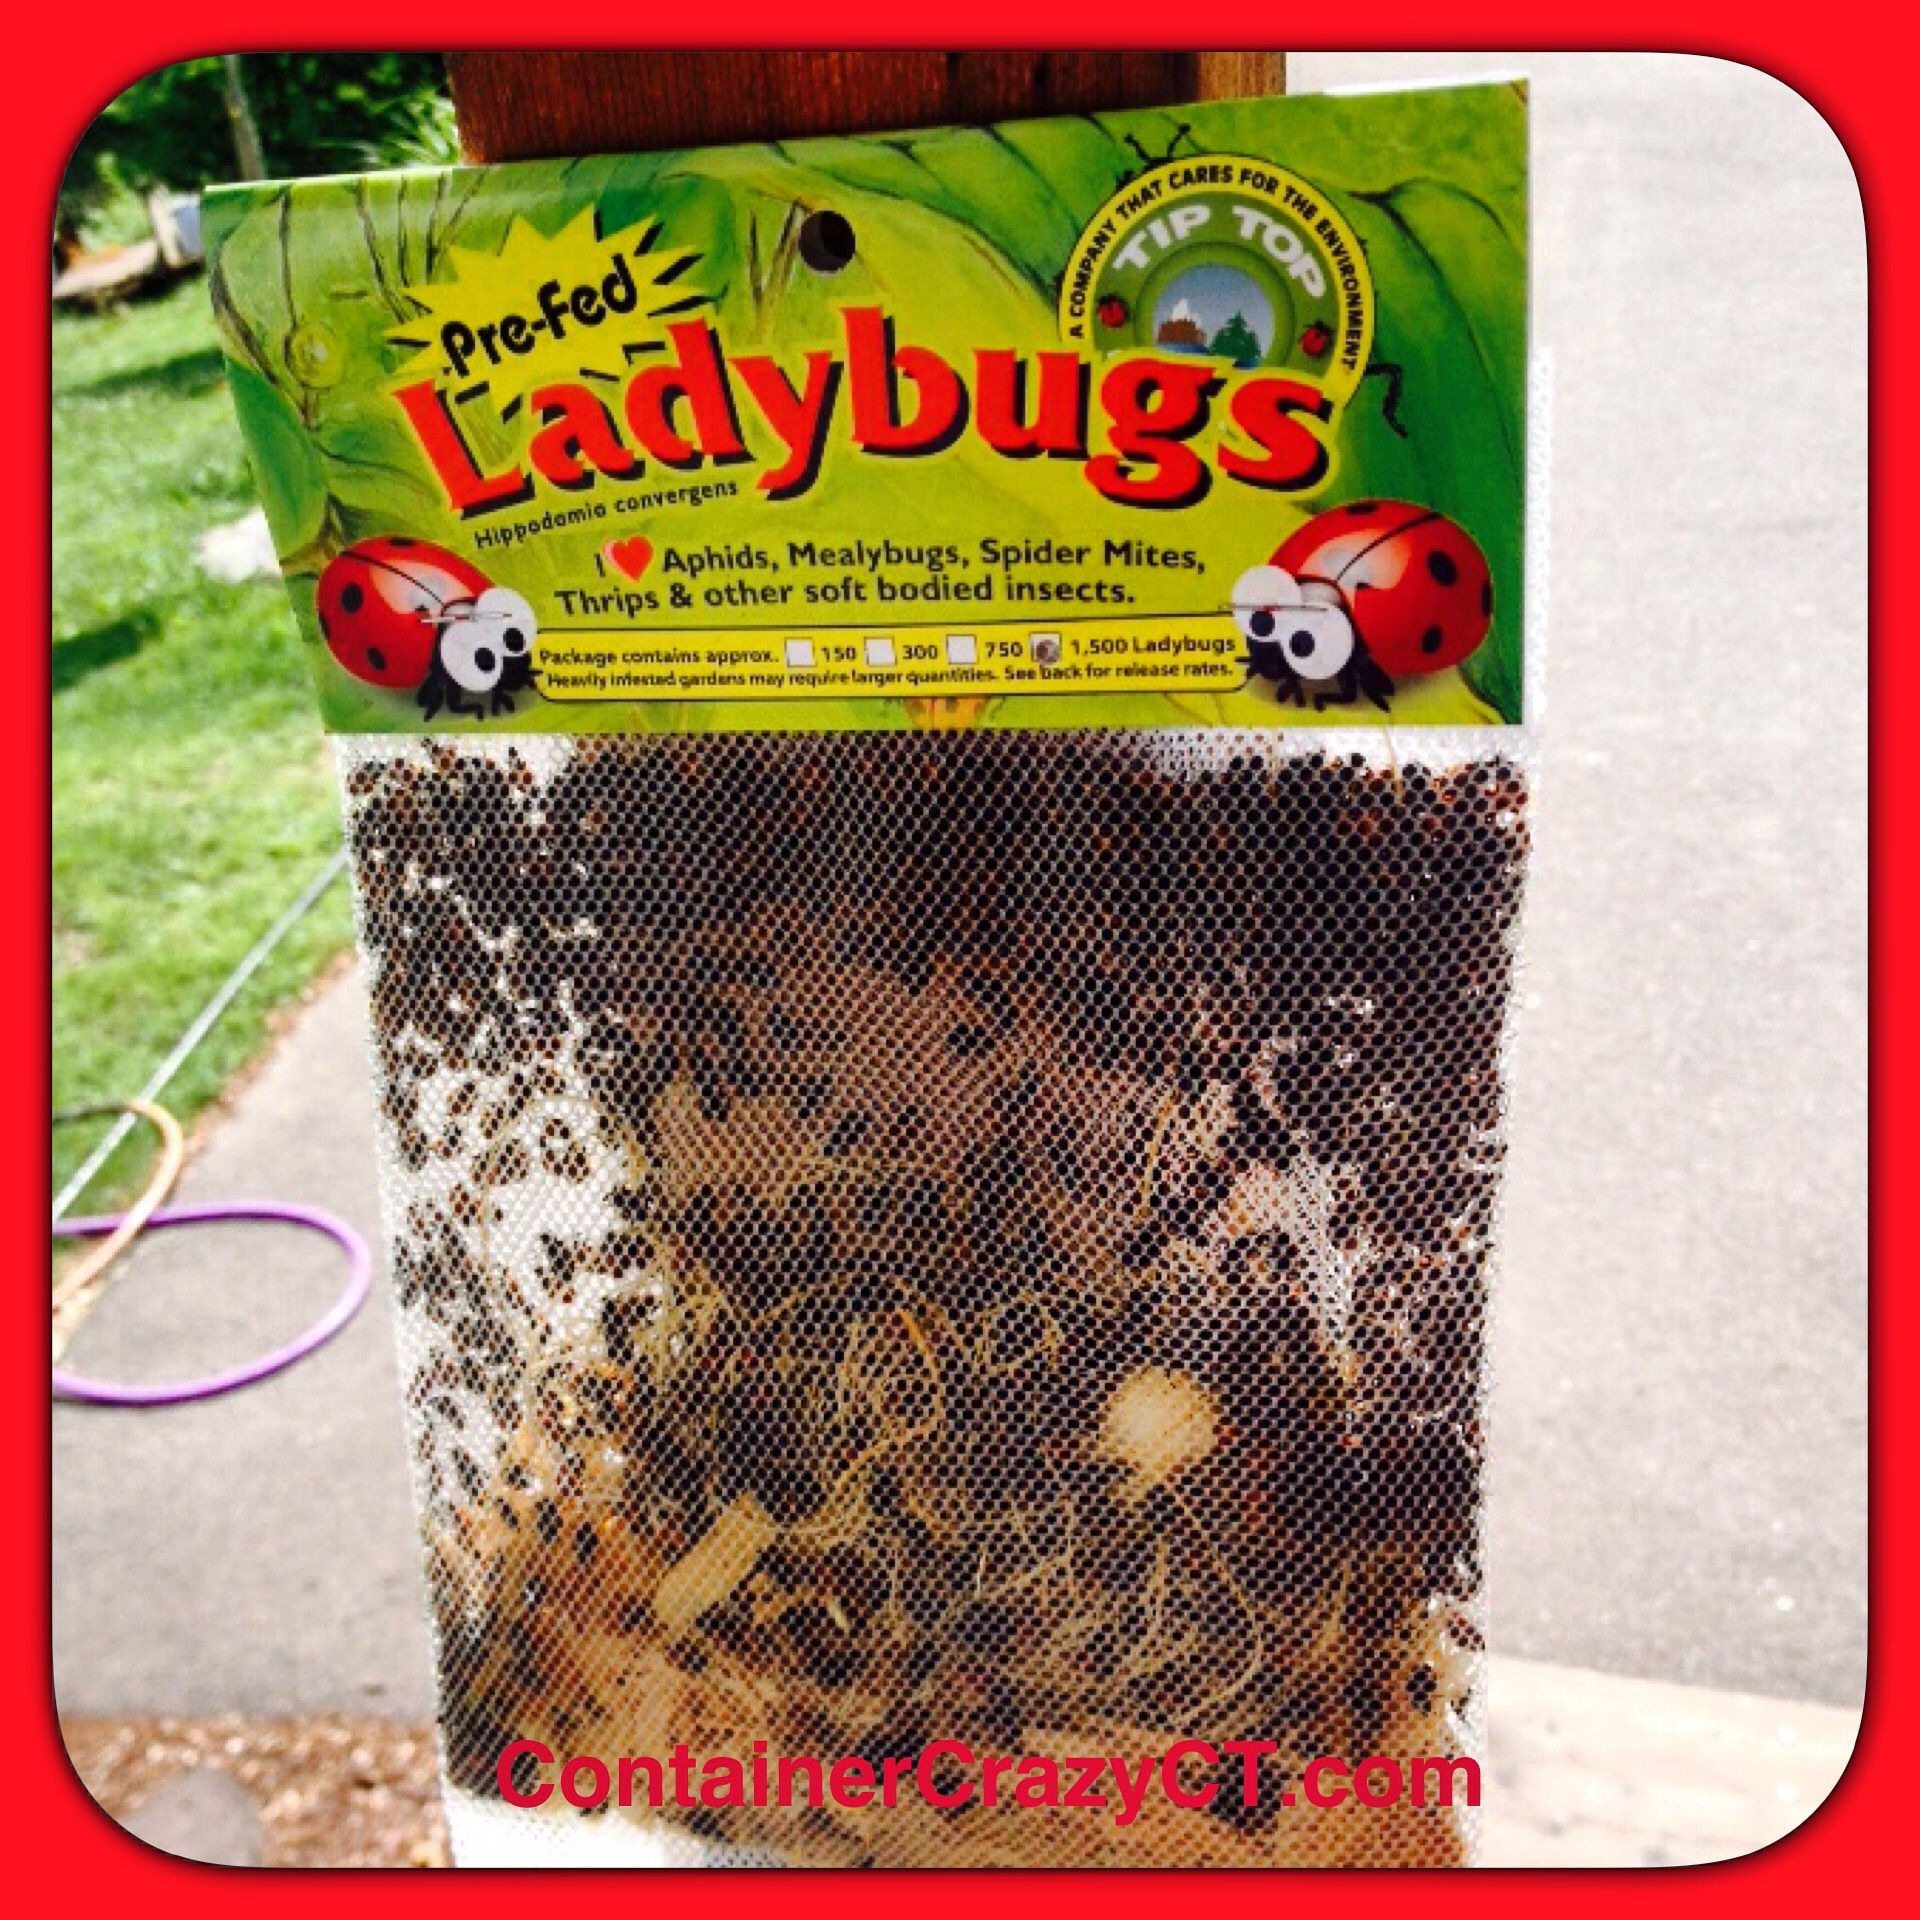 Lady Bugs are Beneficial